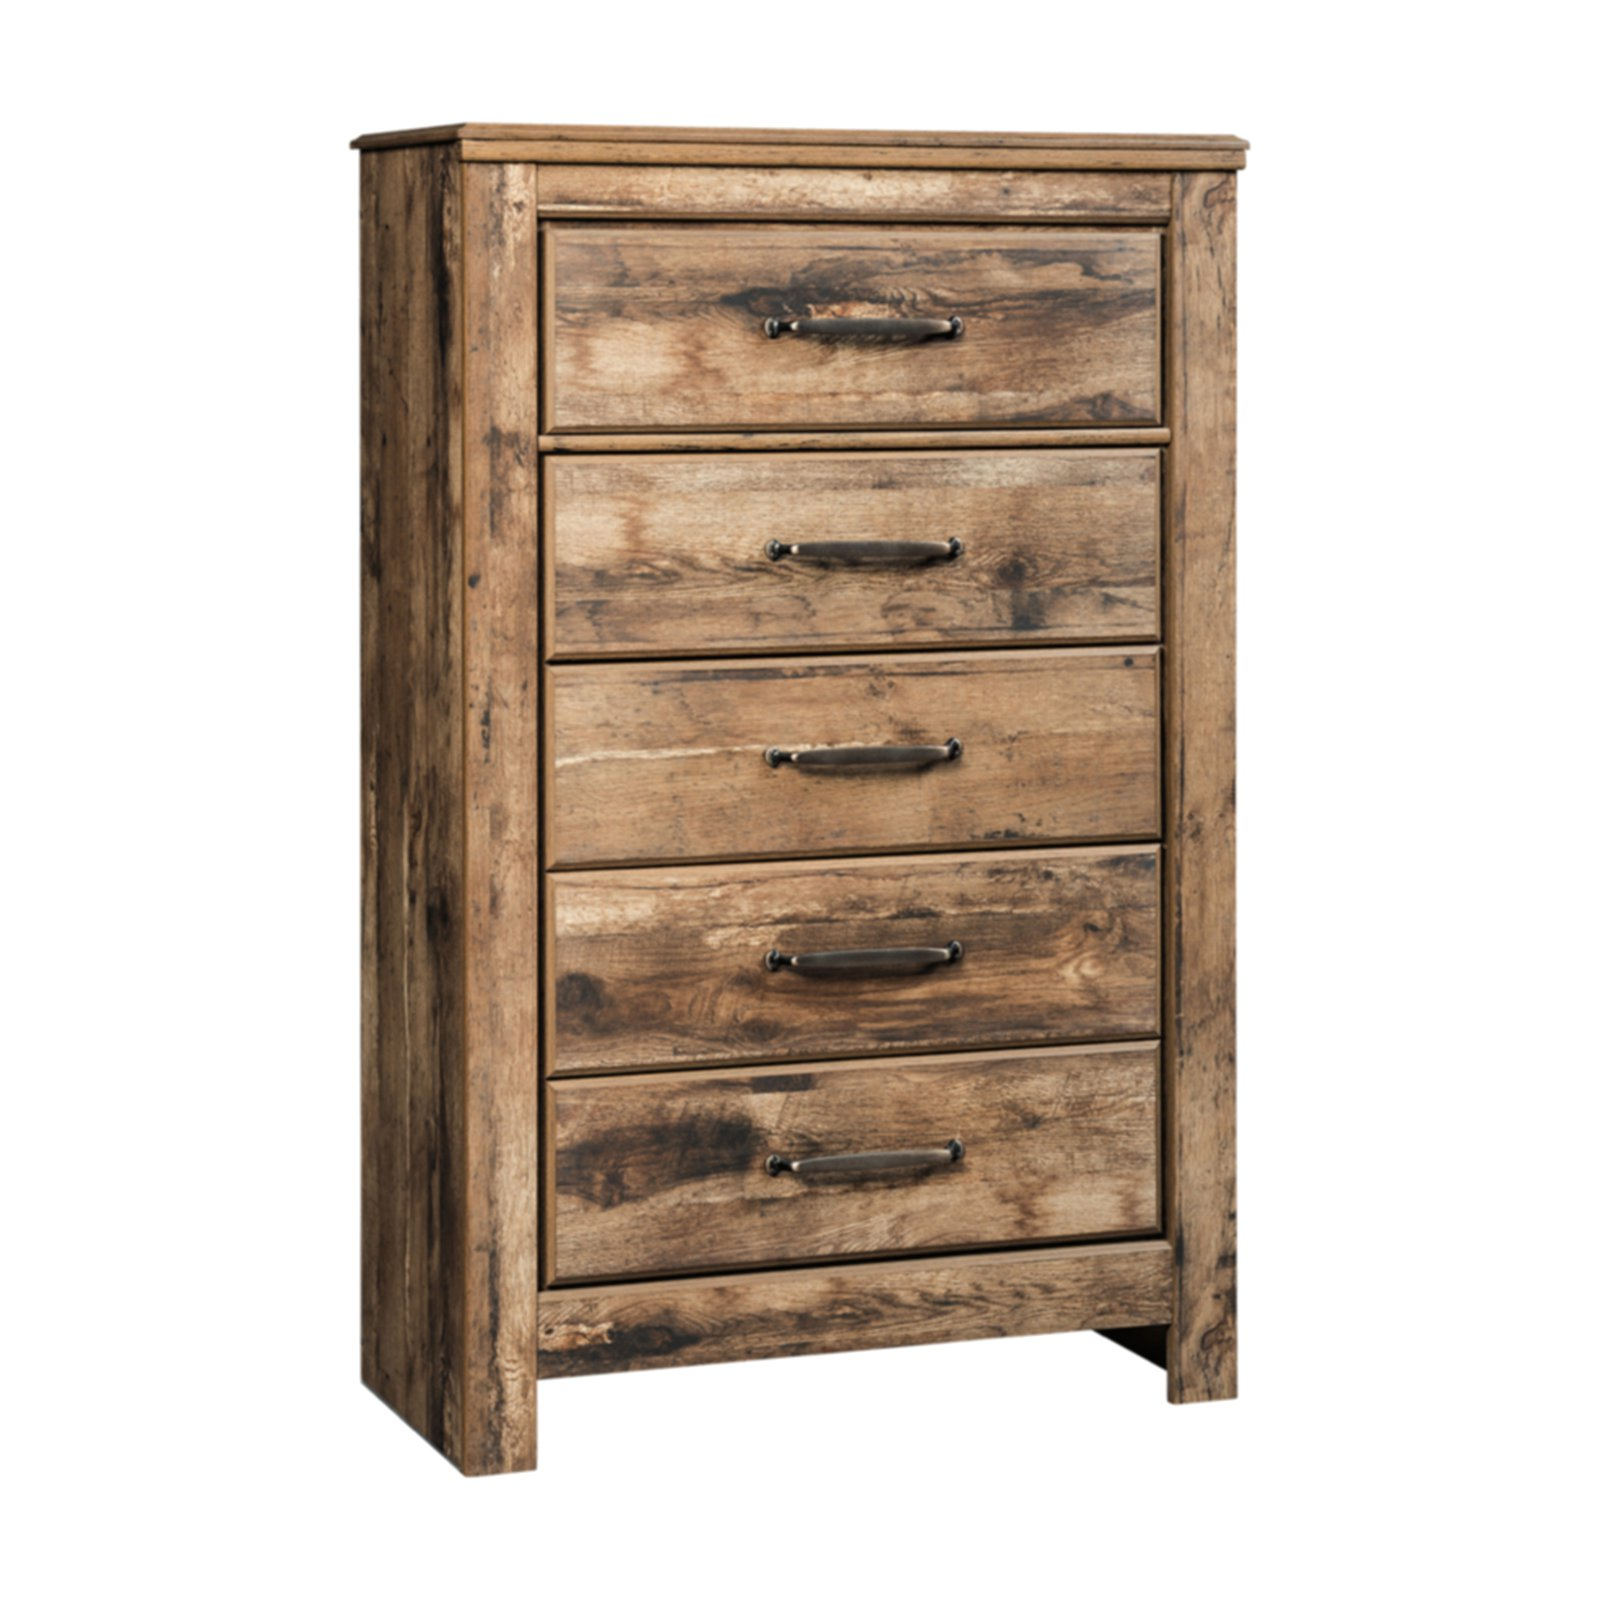 Signature Design by Ashley Blaneville 5 Drawer Chest